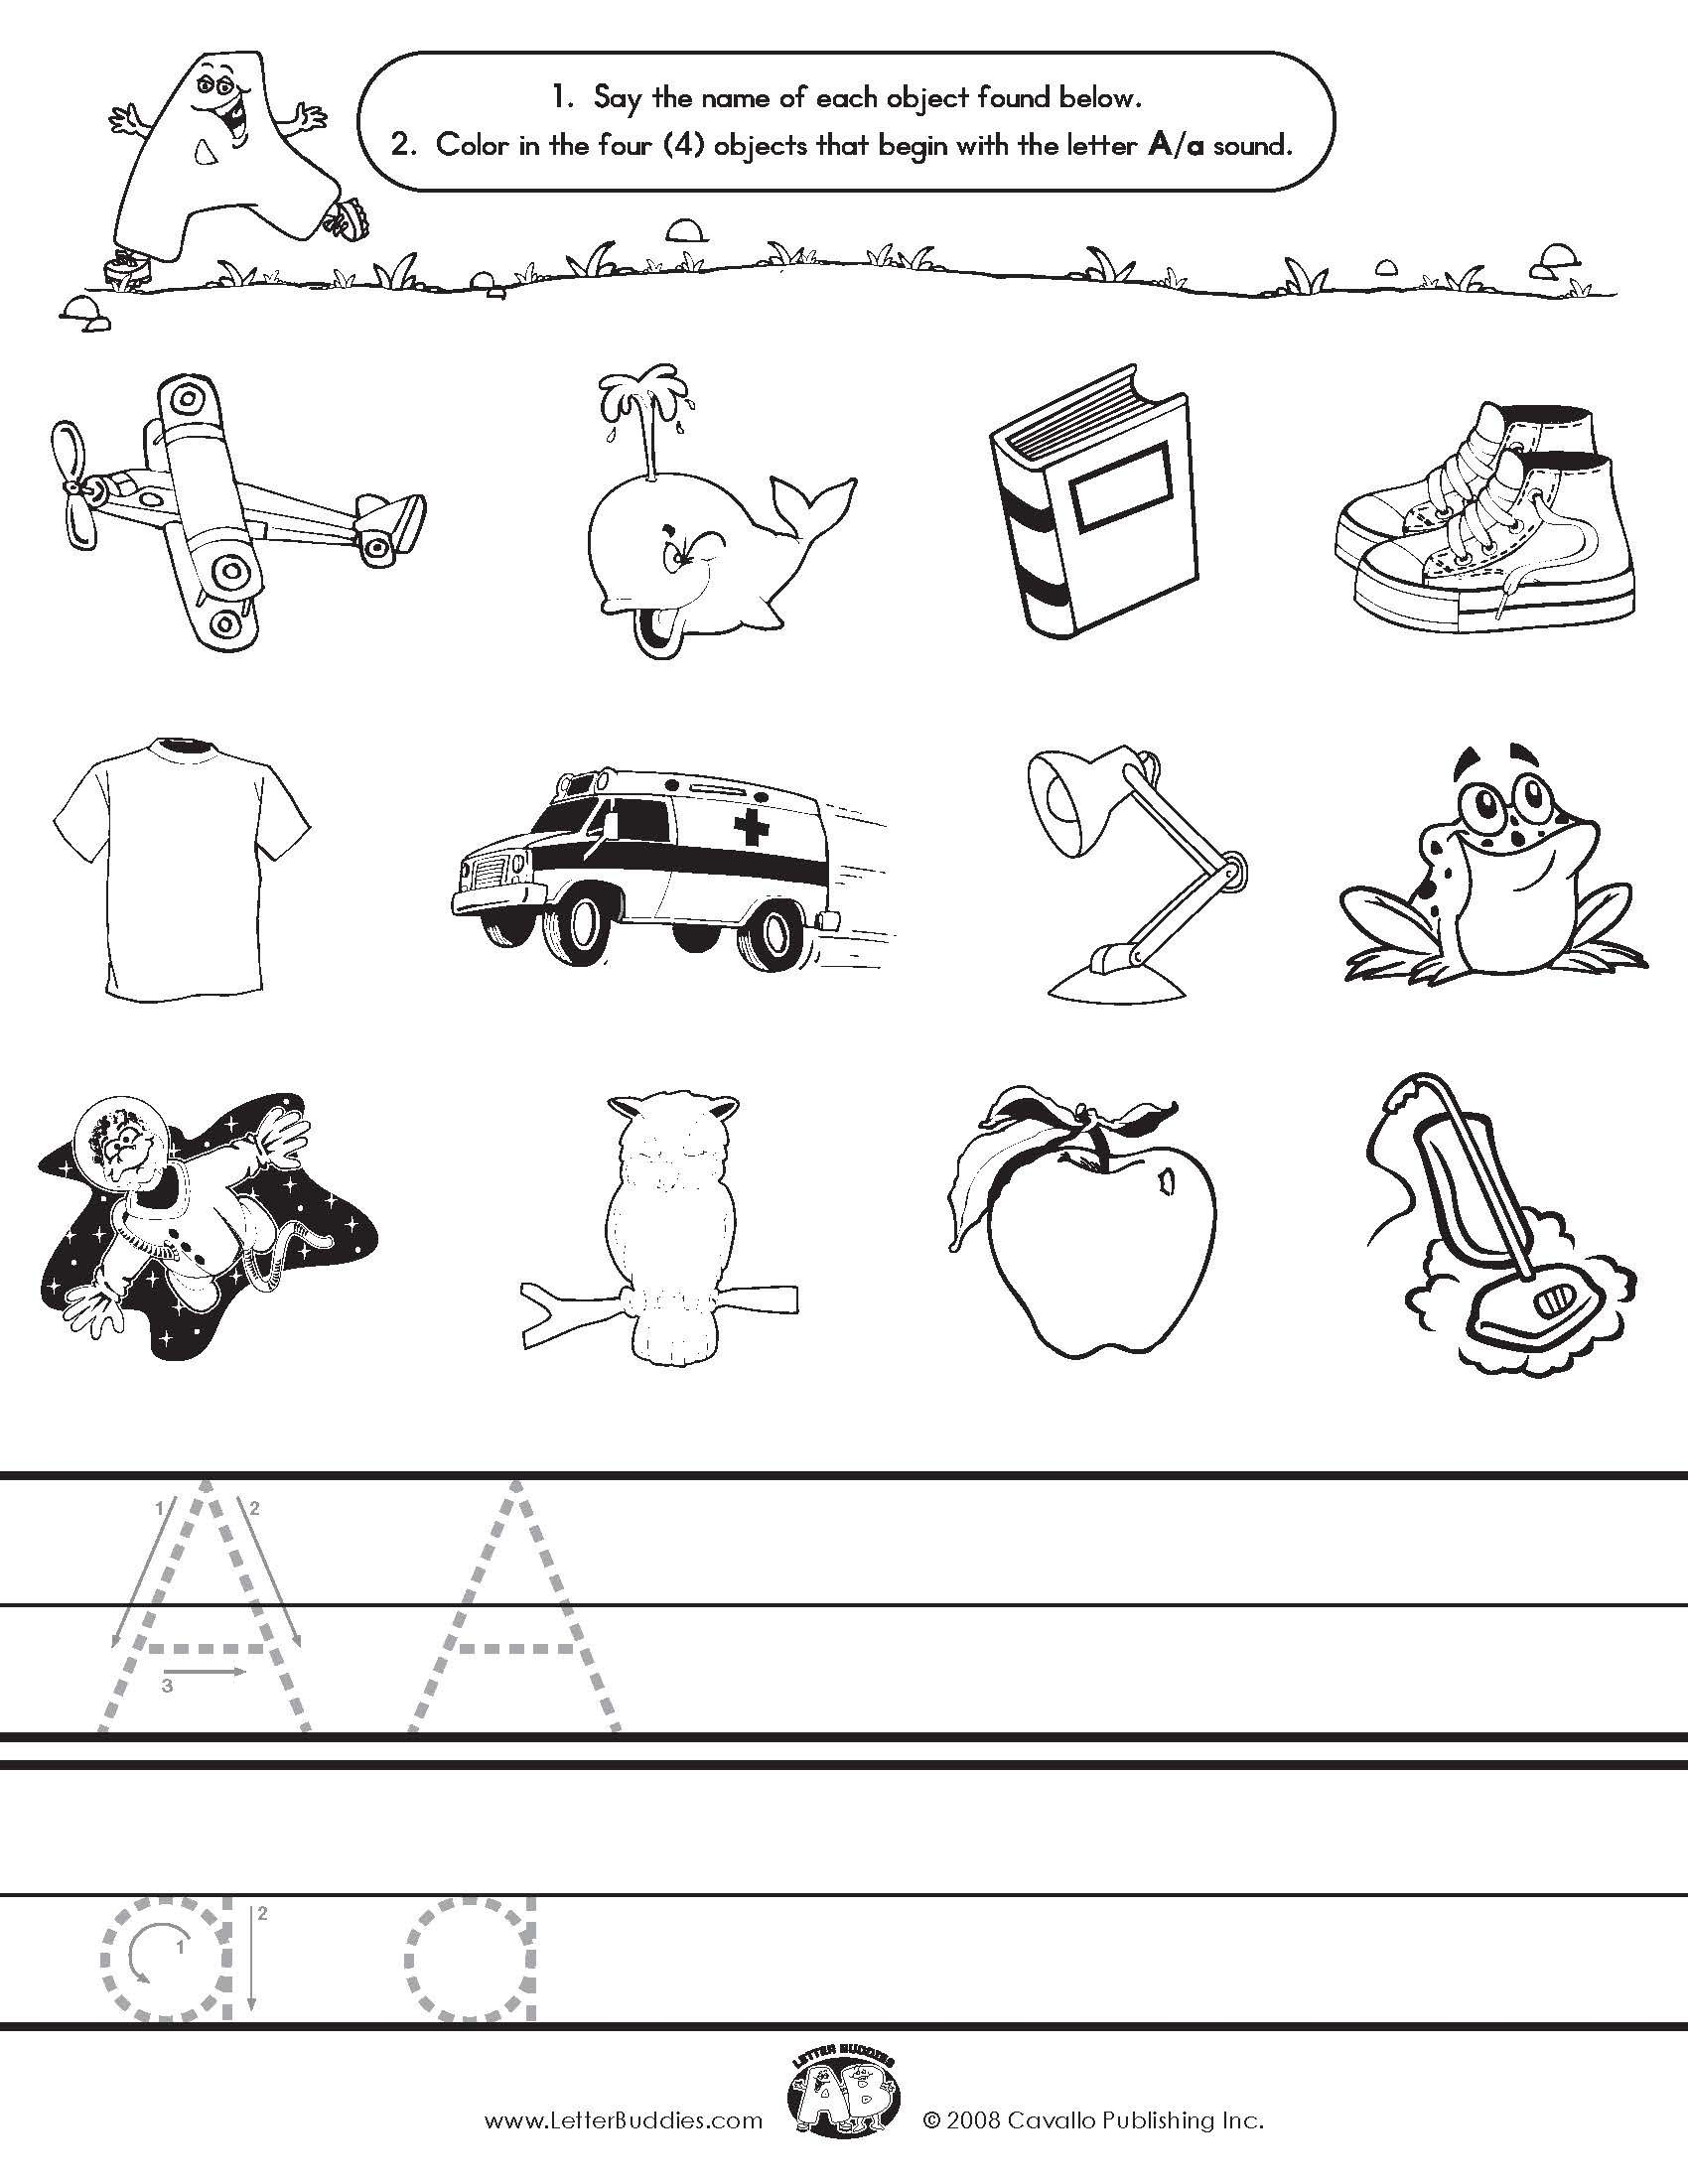 Worksheets Sound Science Worksheets initial sounds writing alphabet language arts ideas writing